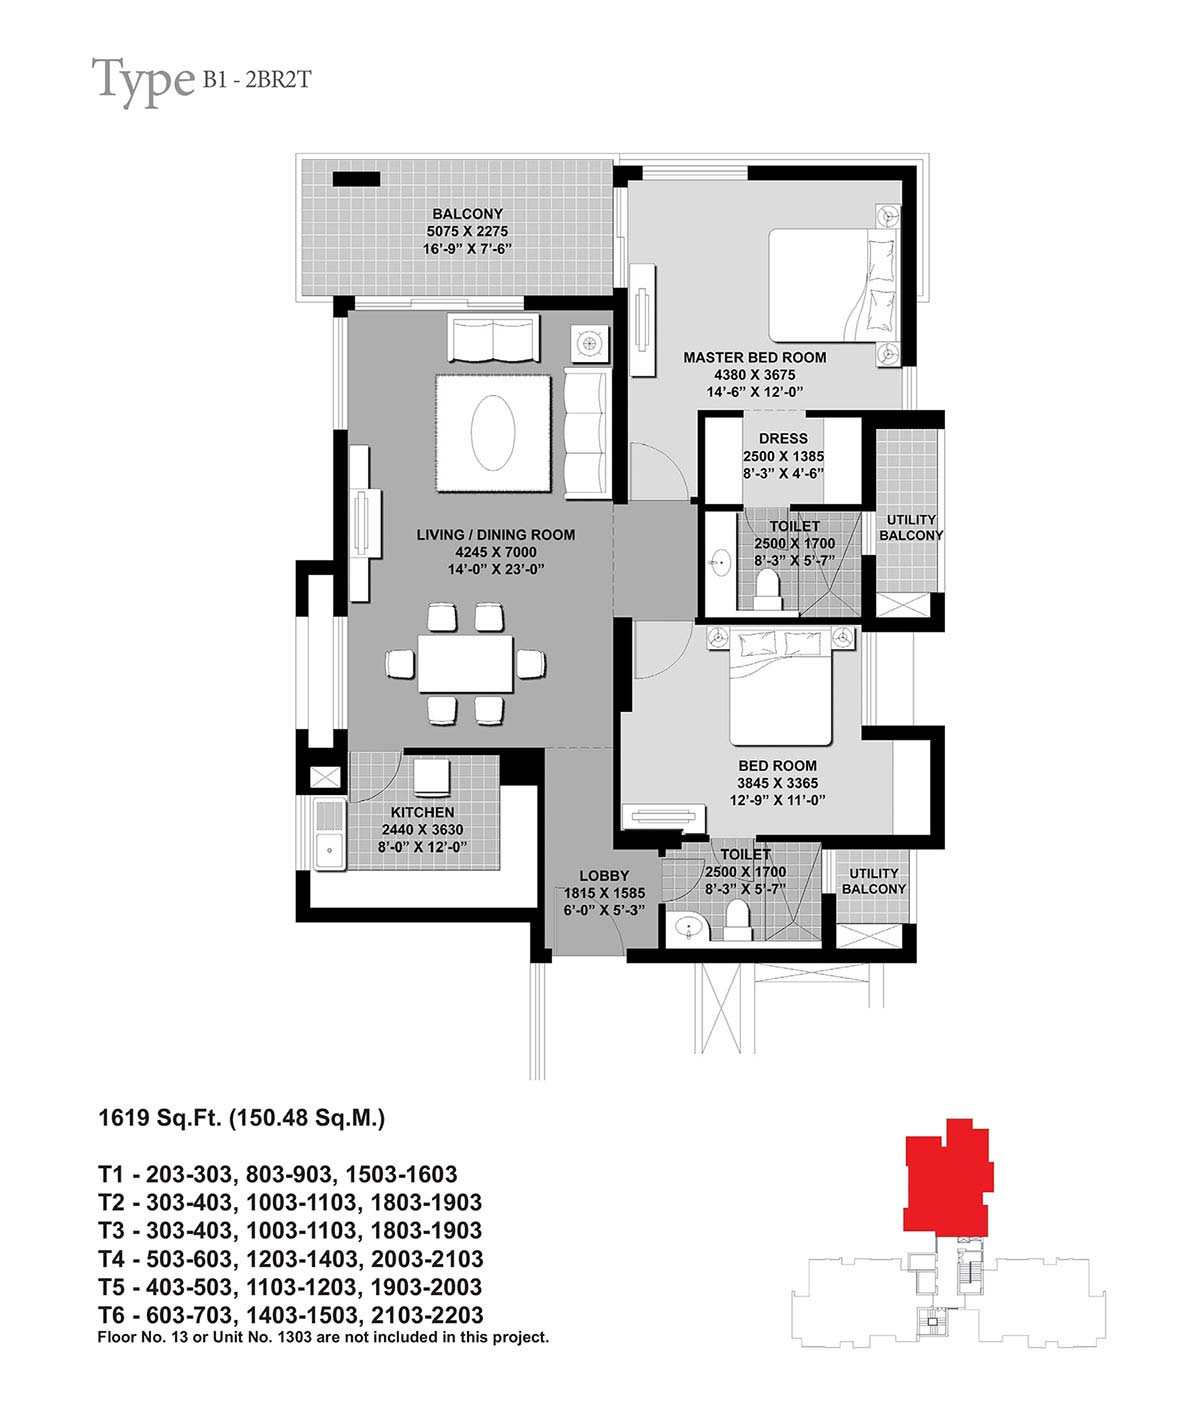 Floor Plan-2BR2T-1619 Sq.Ft.